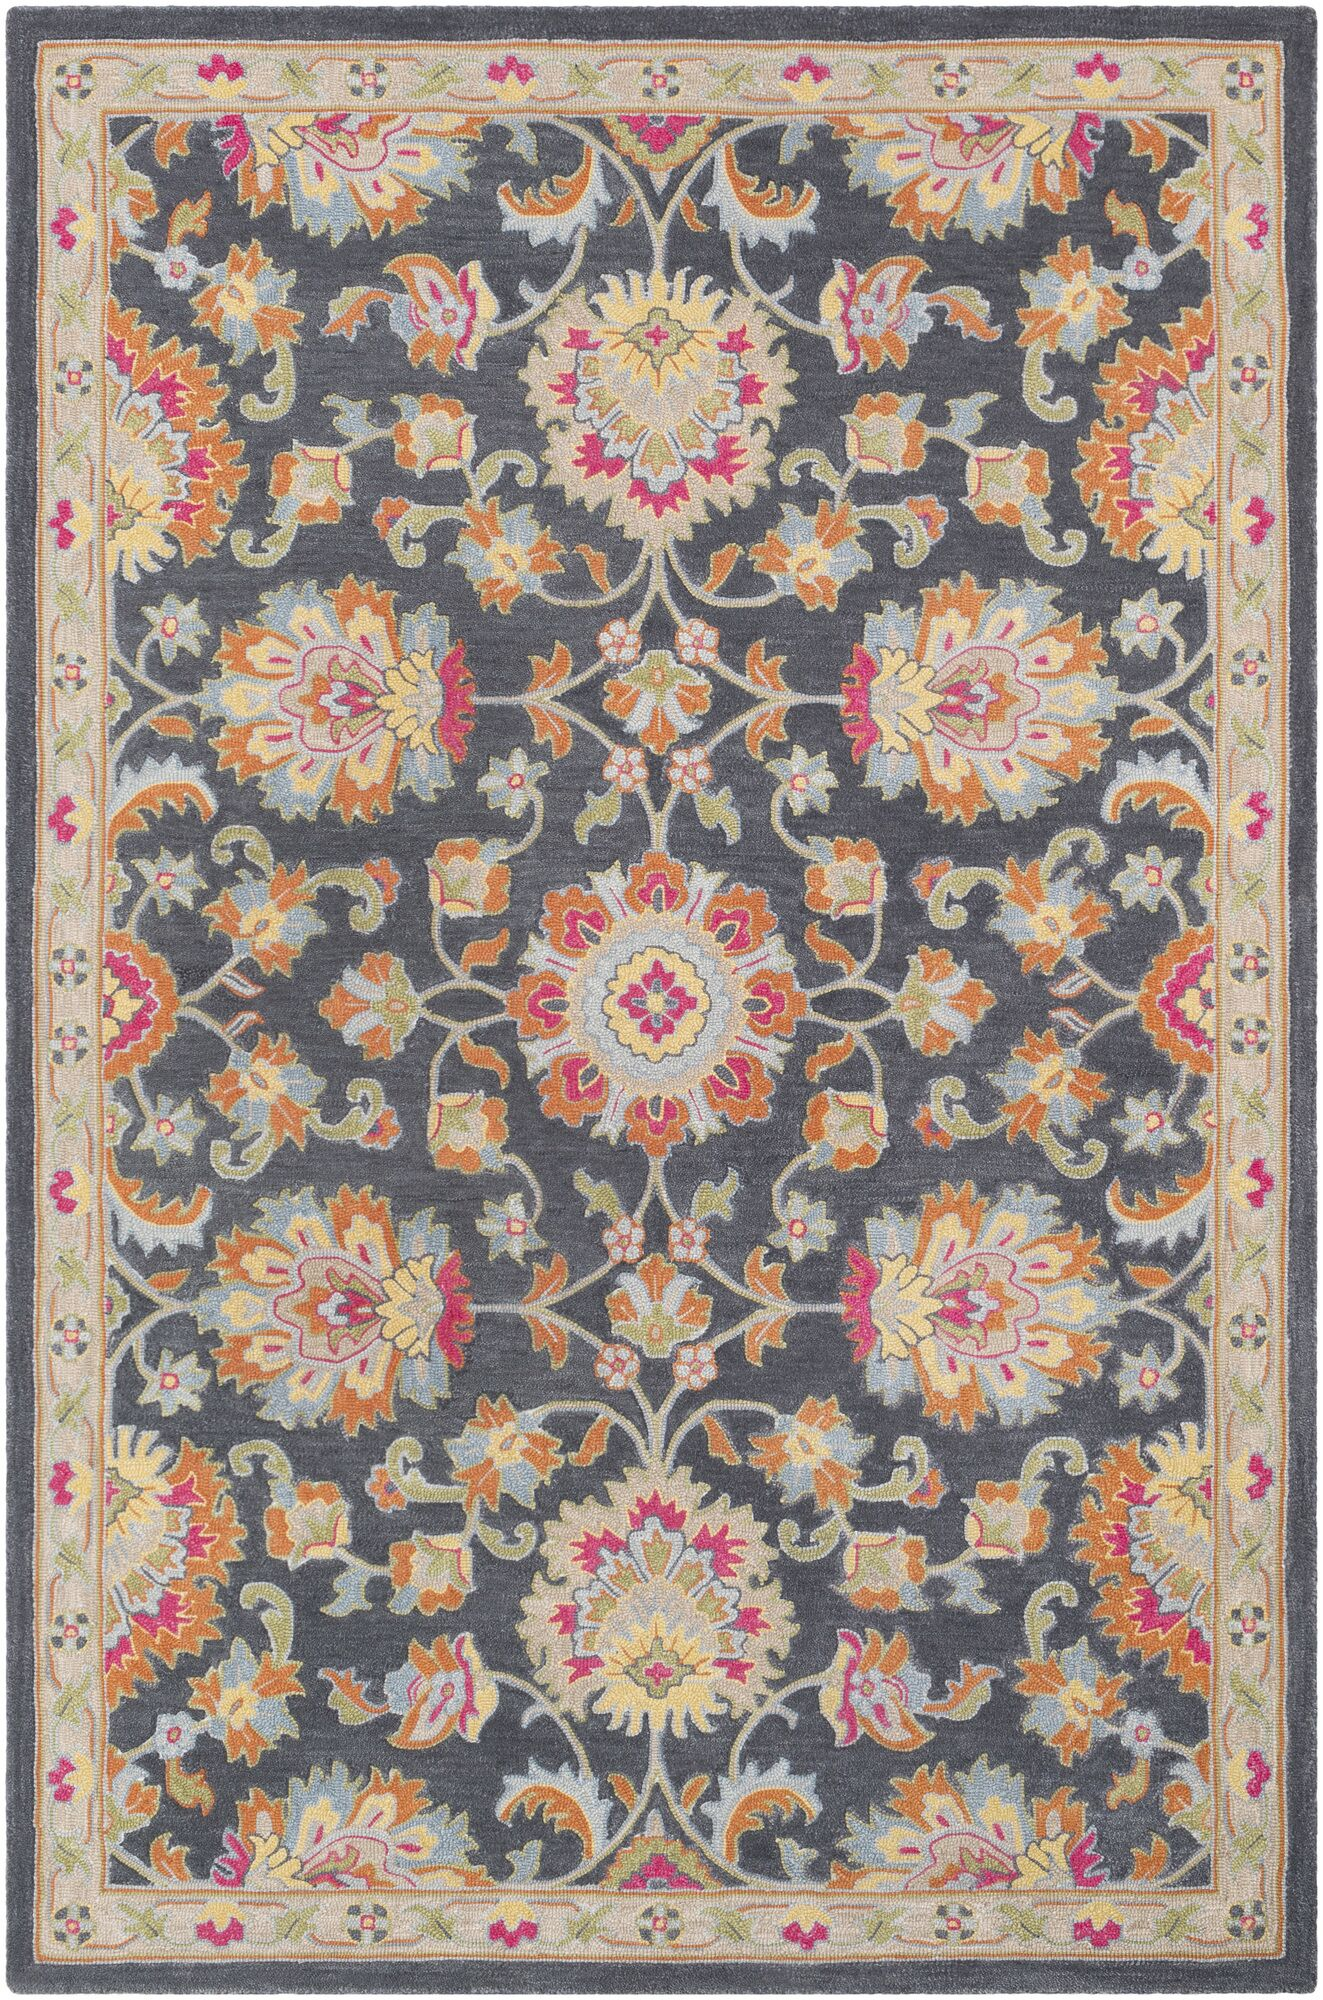 Edgerly Hand Tufted Wool Charcoal Area Rug Rug Size: Rectangle 8' x 10'